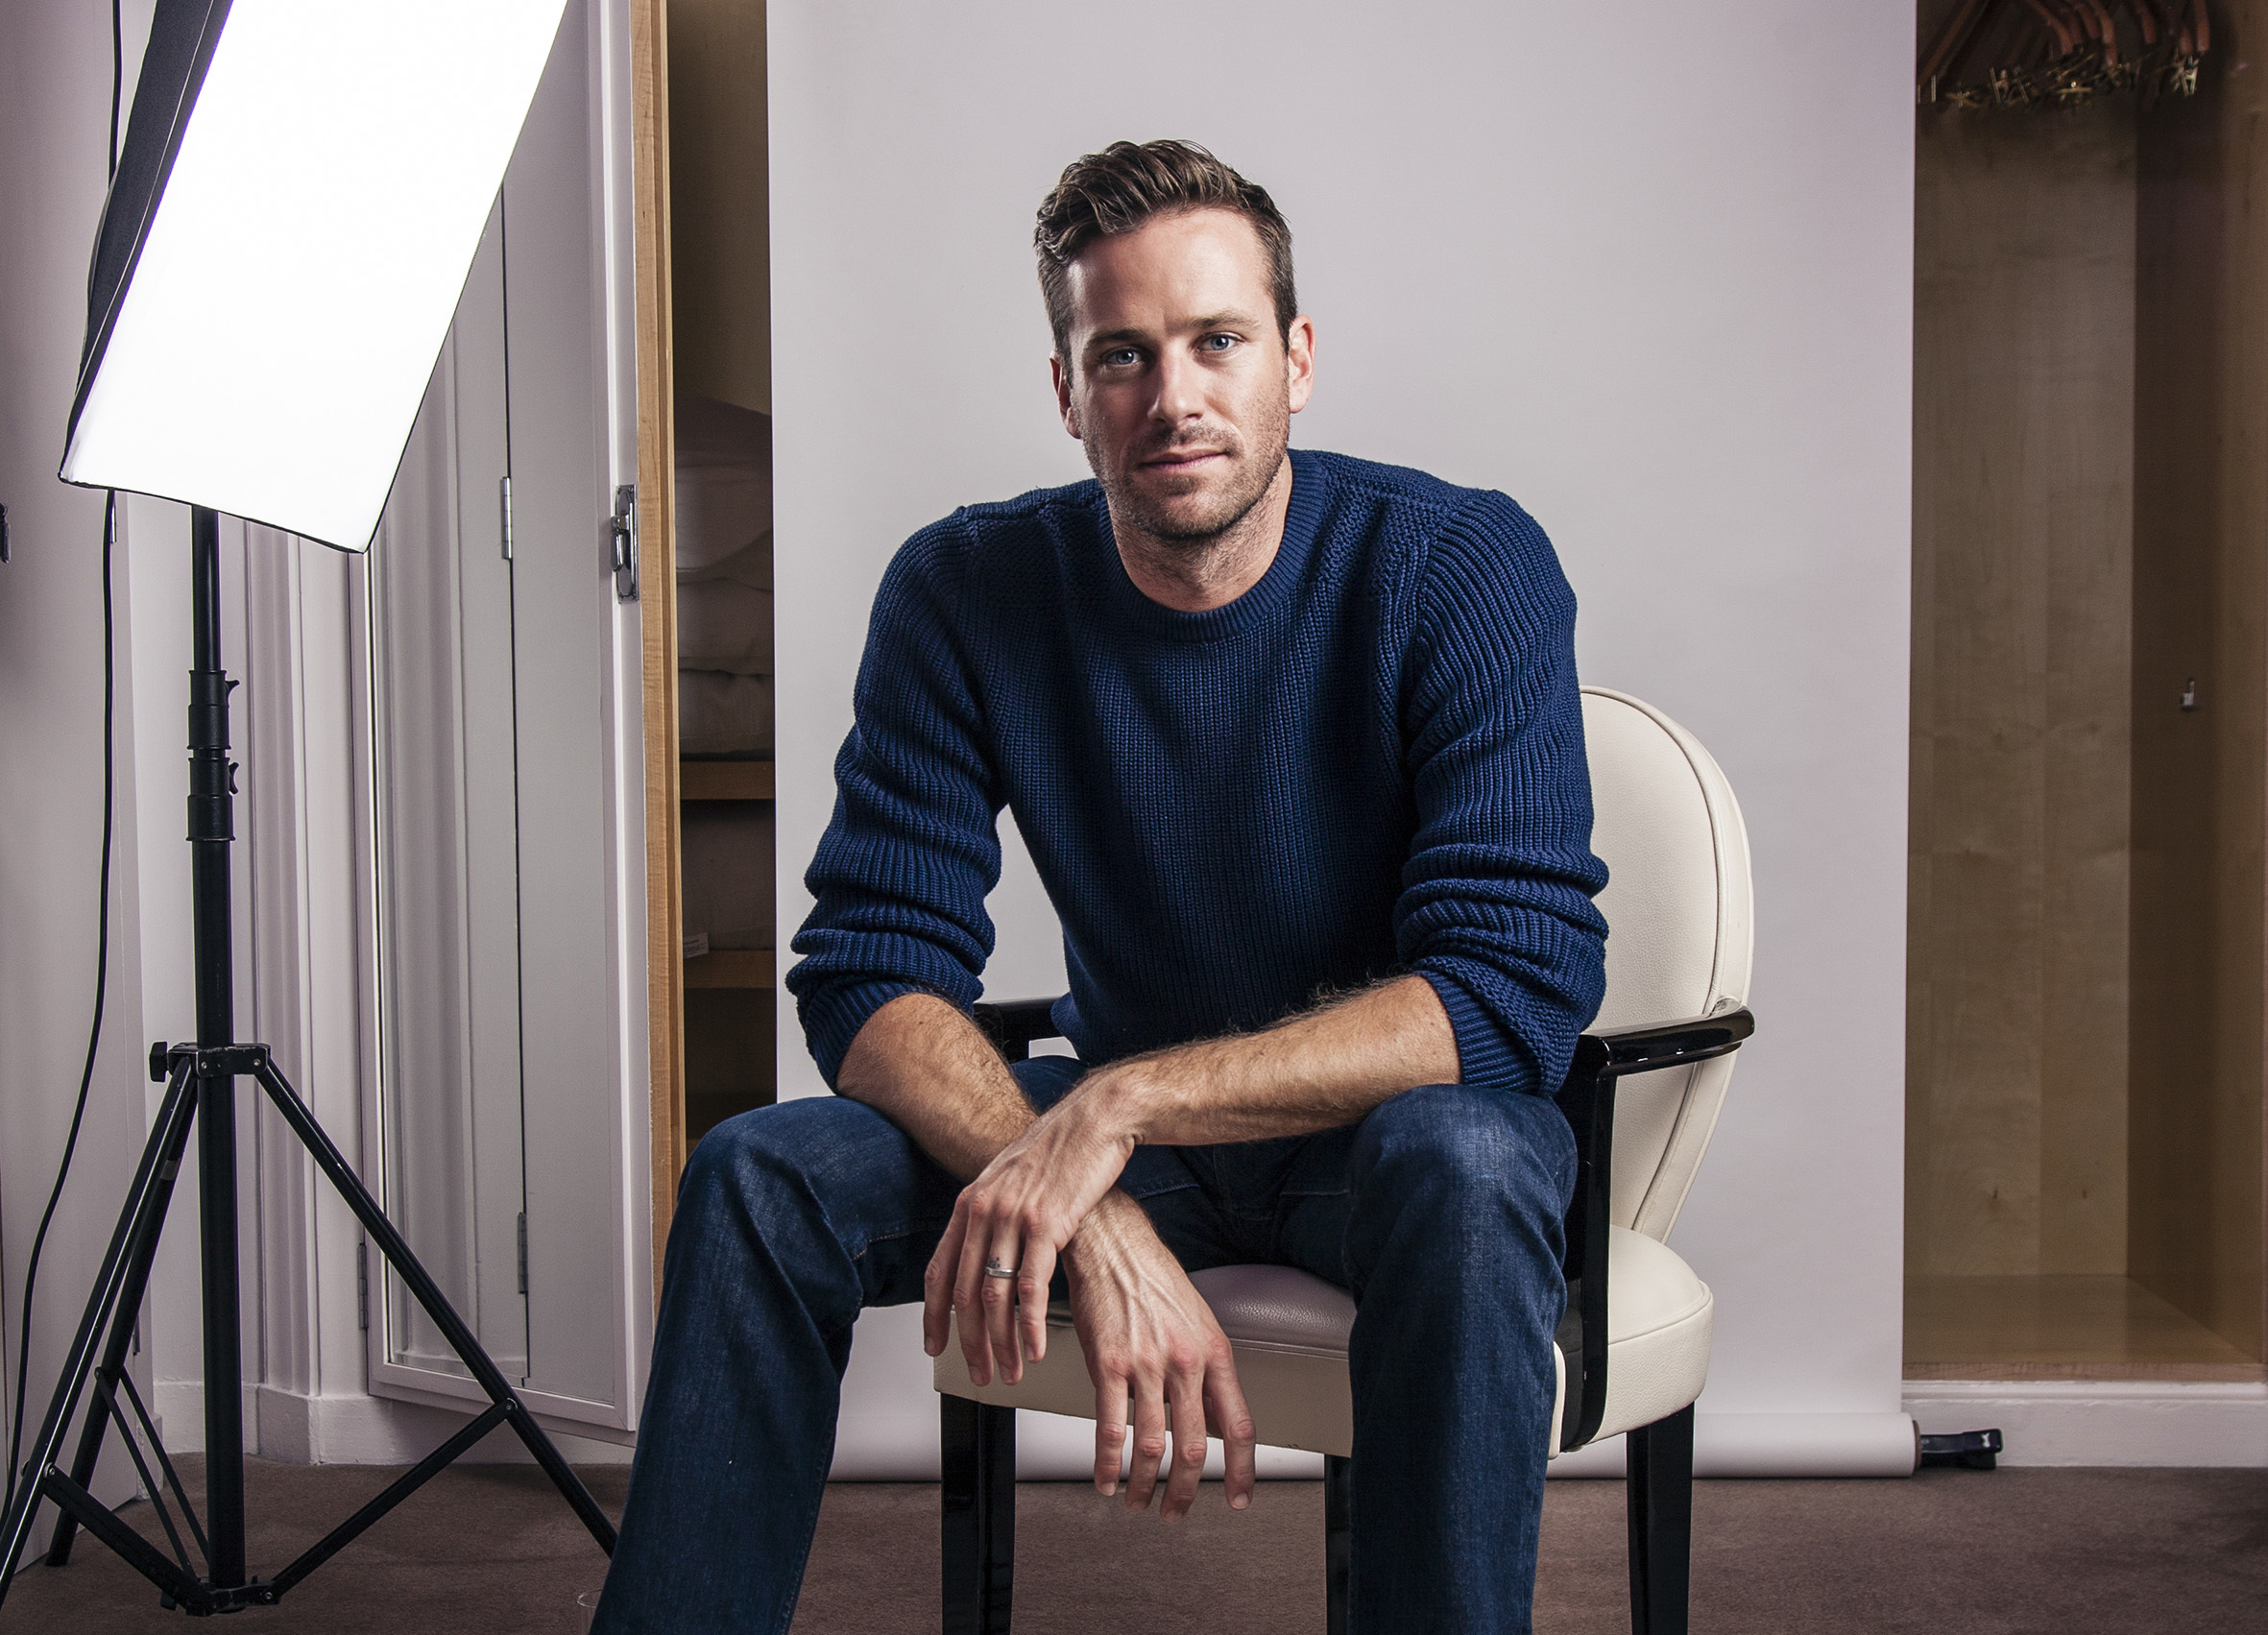 Armie Hammer on going arthouse for 'Call Me By Your Name'